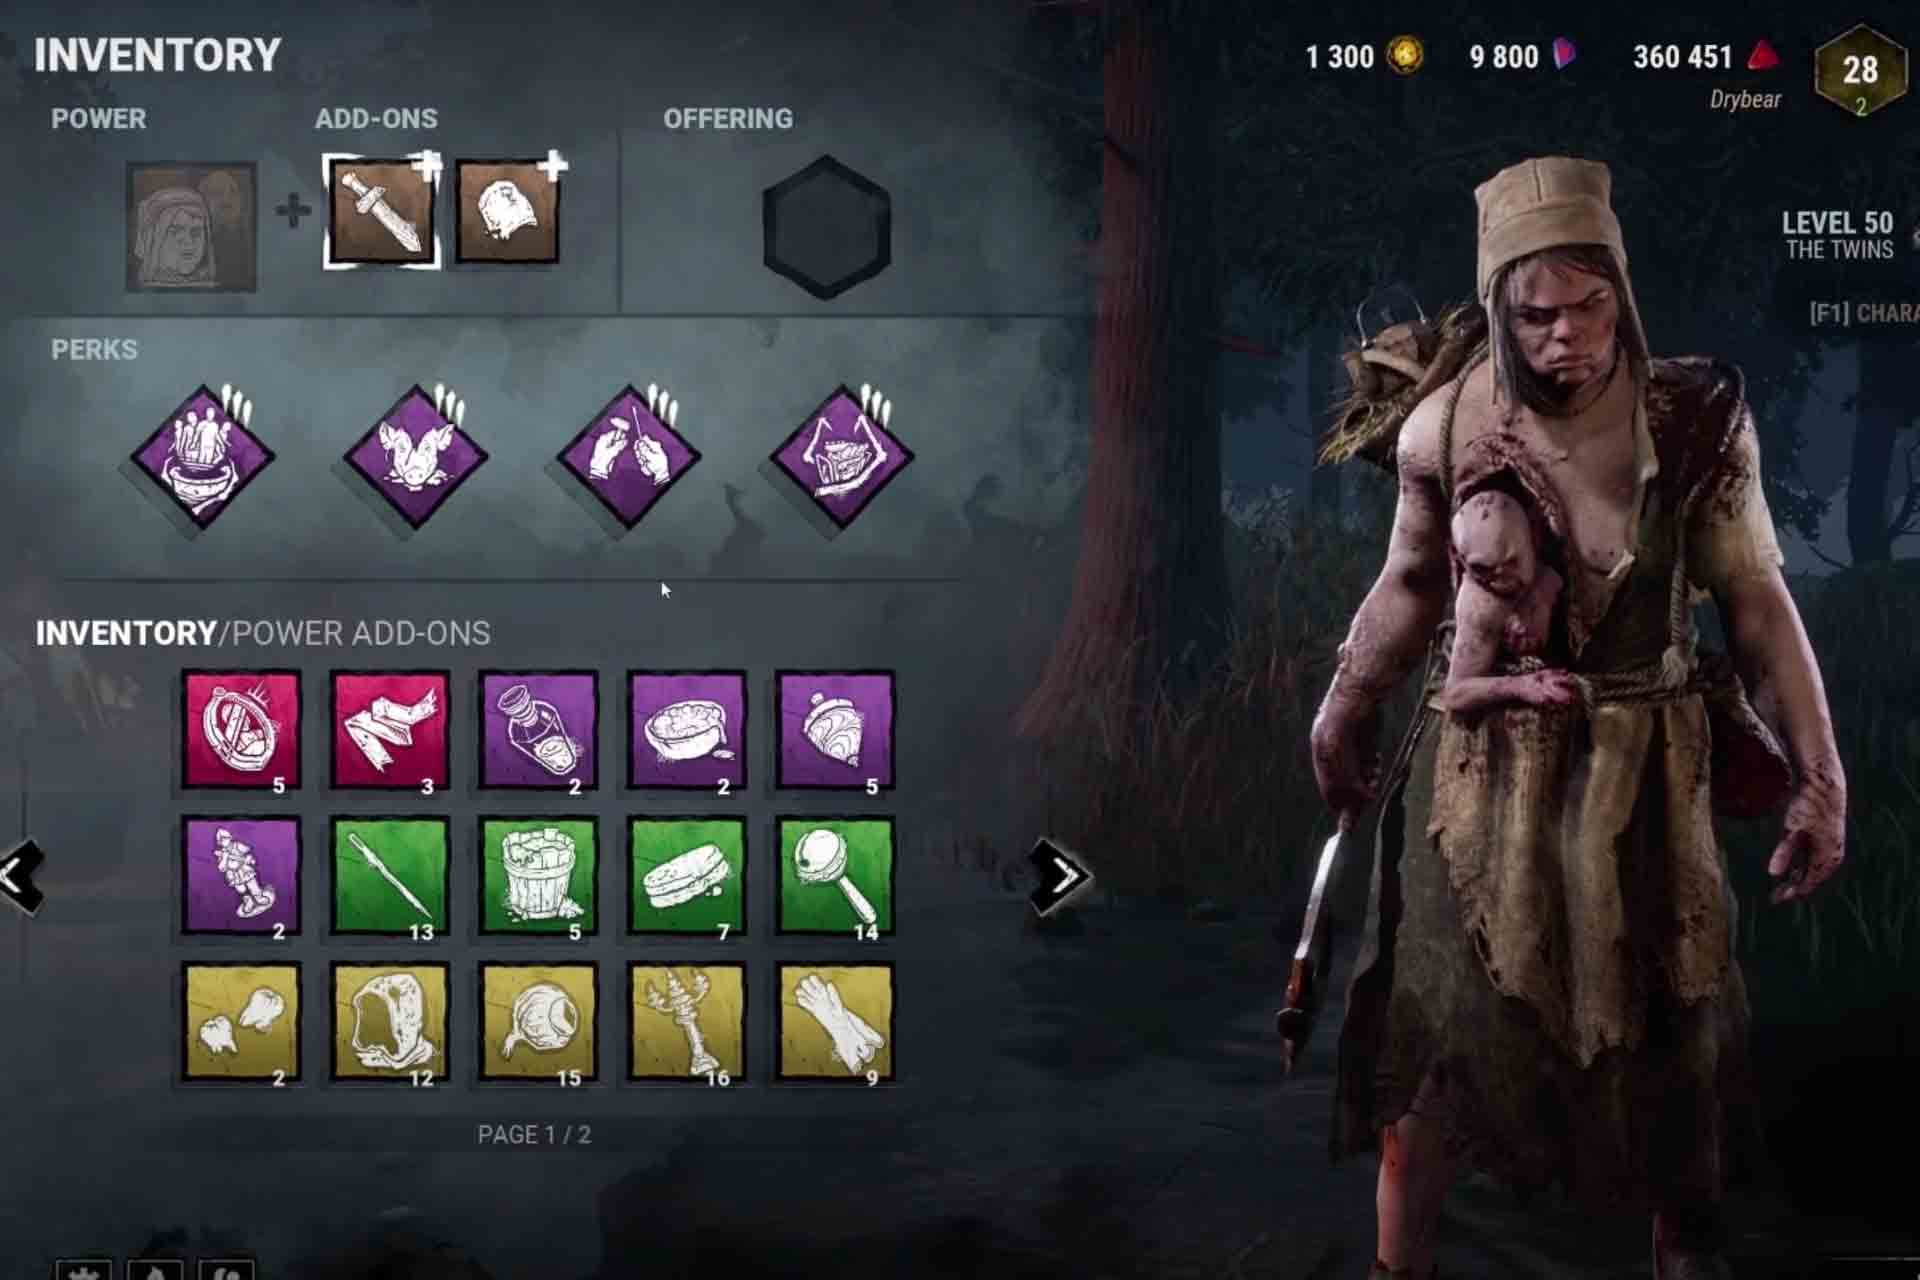 Customisation of Killer characters in Dead by Daylight game by adding Power, ADD-Ons and Perks.